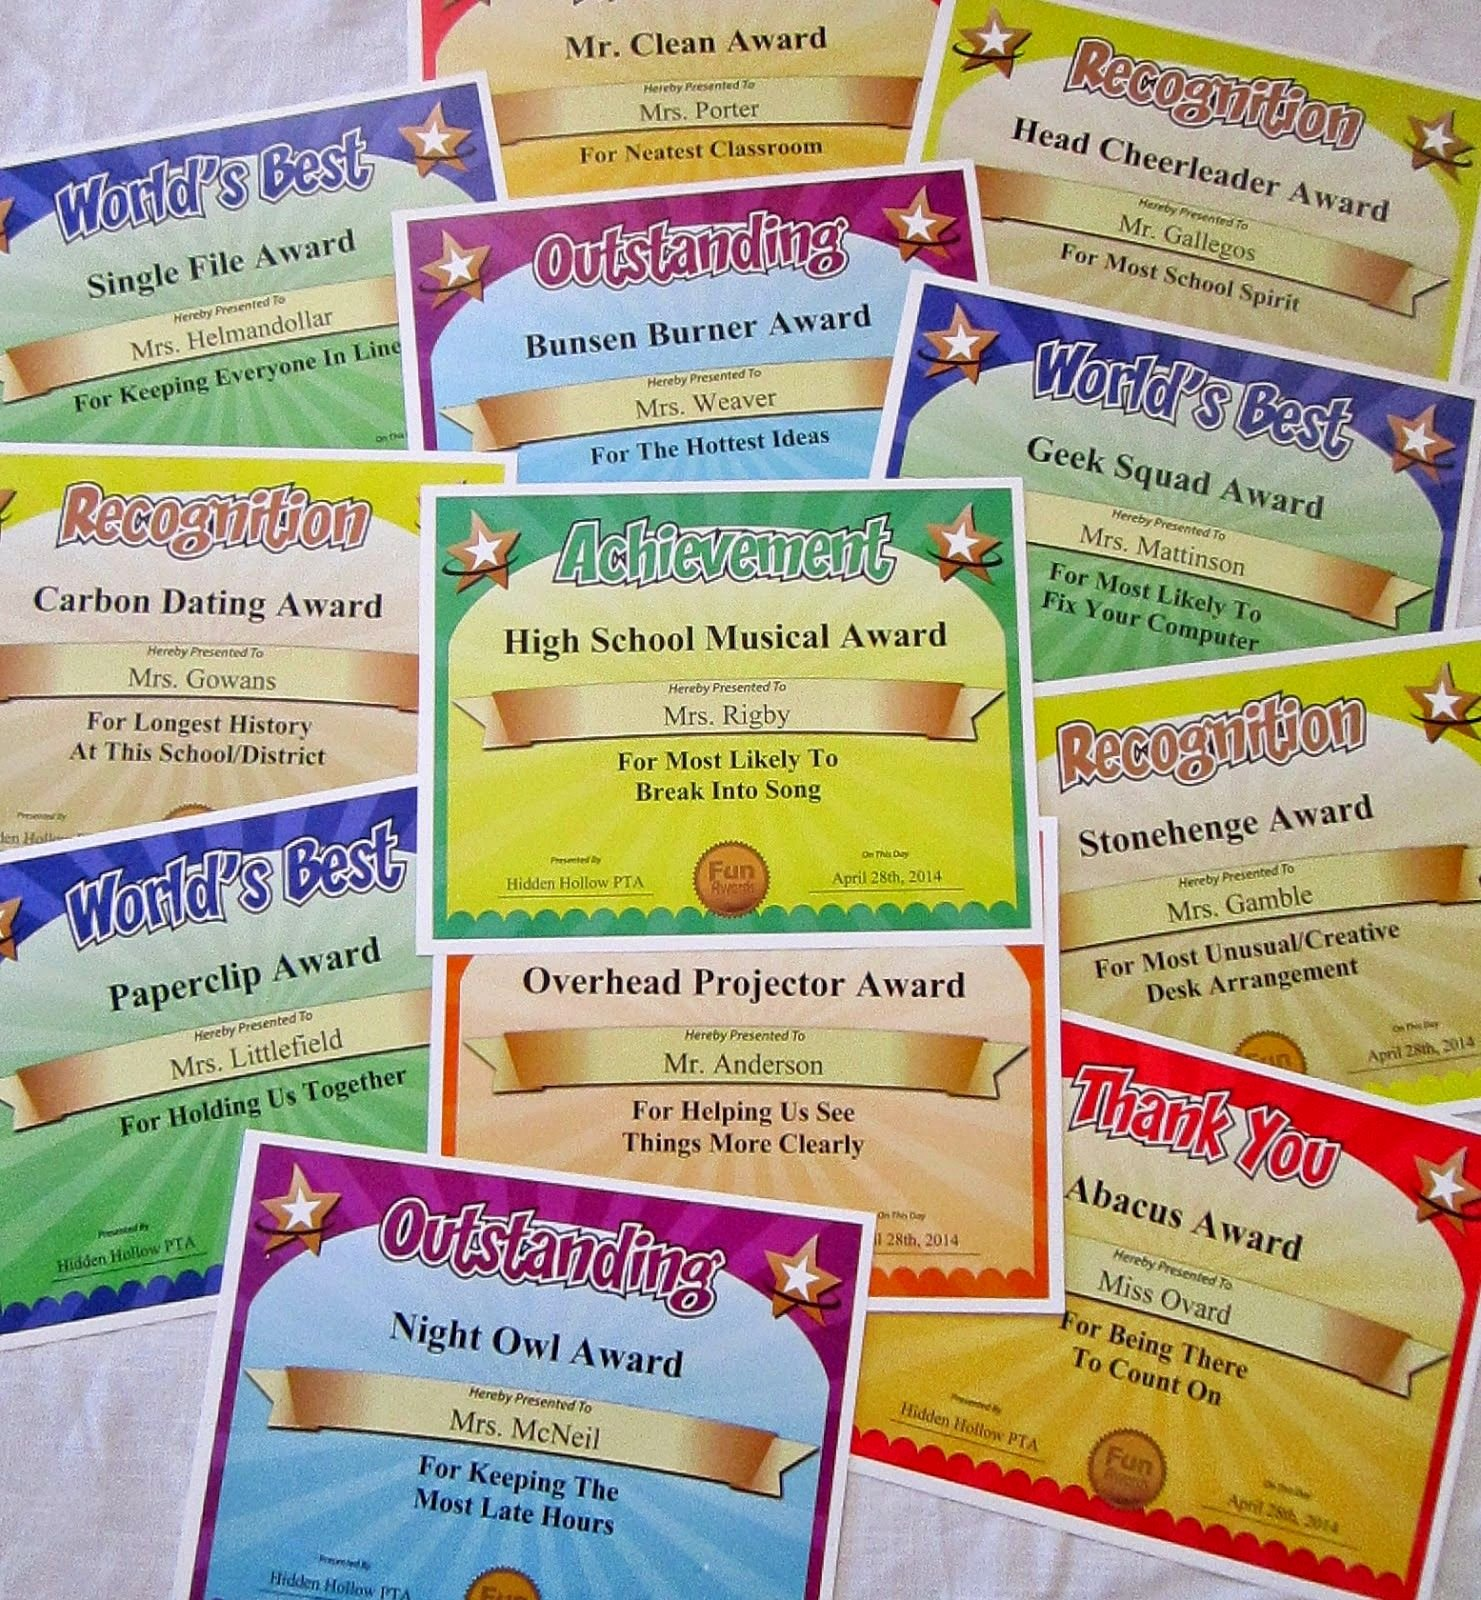 Fun Awards for Students Inspirational From 101 Funny Teacher Awards by Larry Weaver